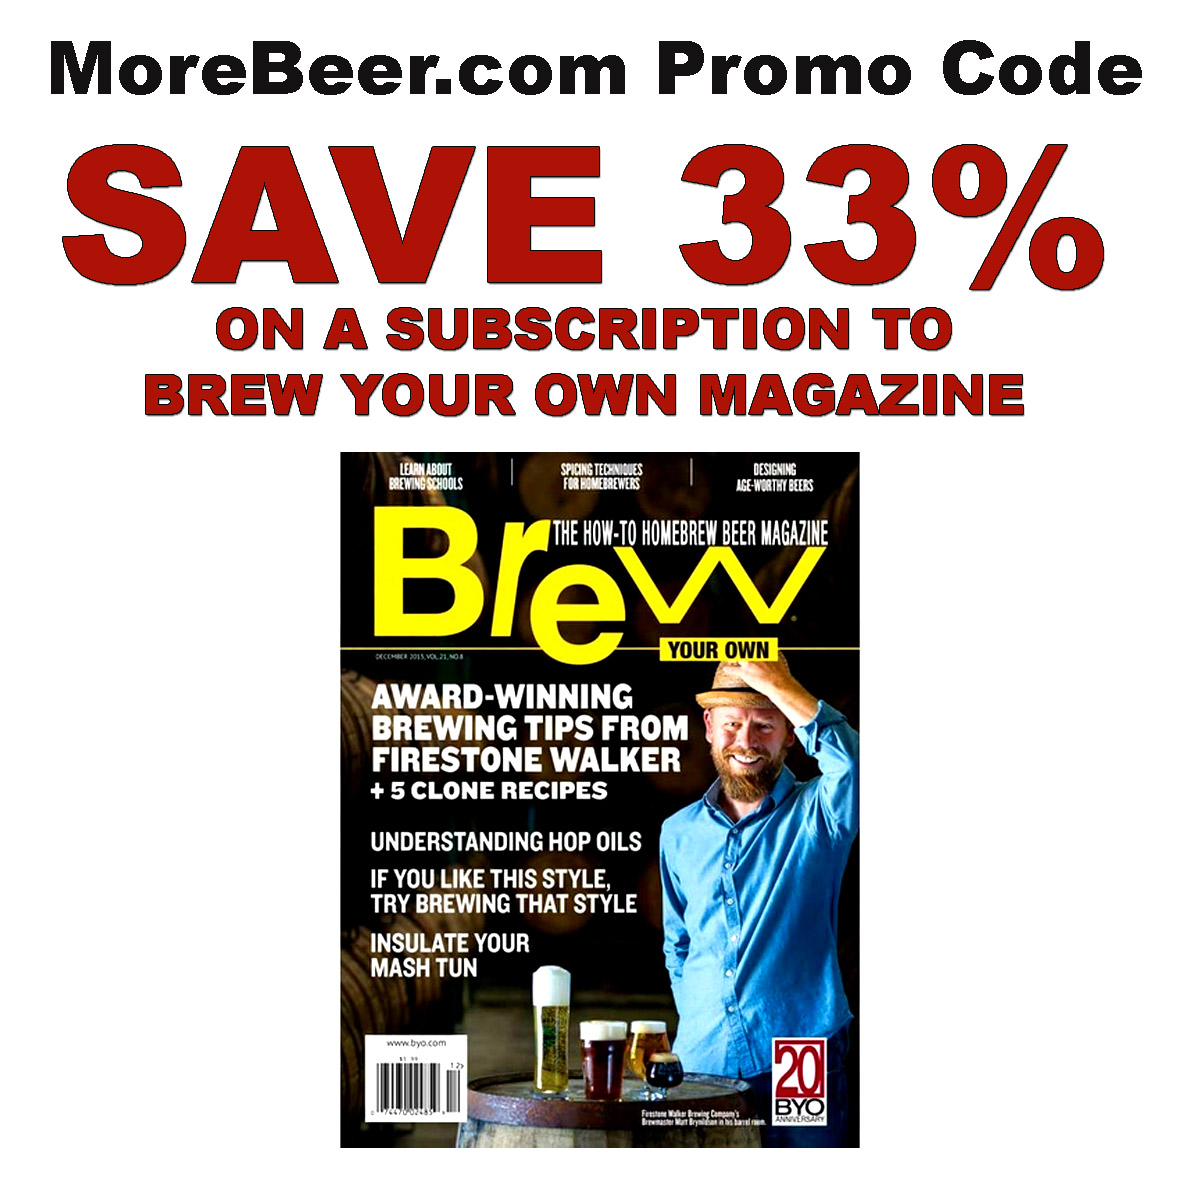 MoreBeer Forget Amazon Prime Day, act now and save 33% on Brew Your Own Magazine with the More Beer Home Brewing Promo Code Coupon Code